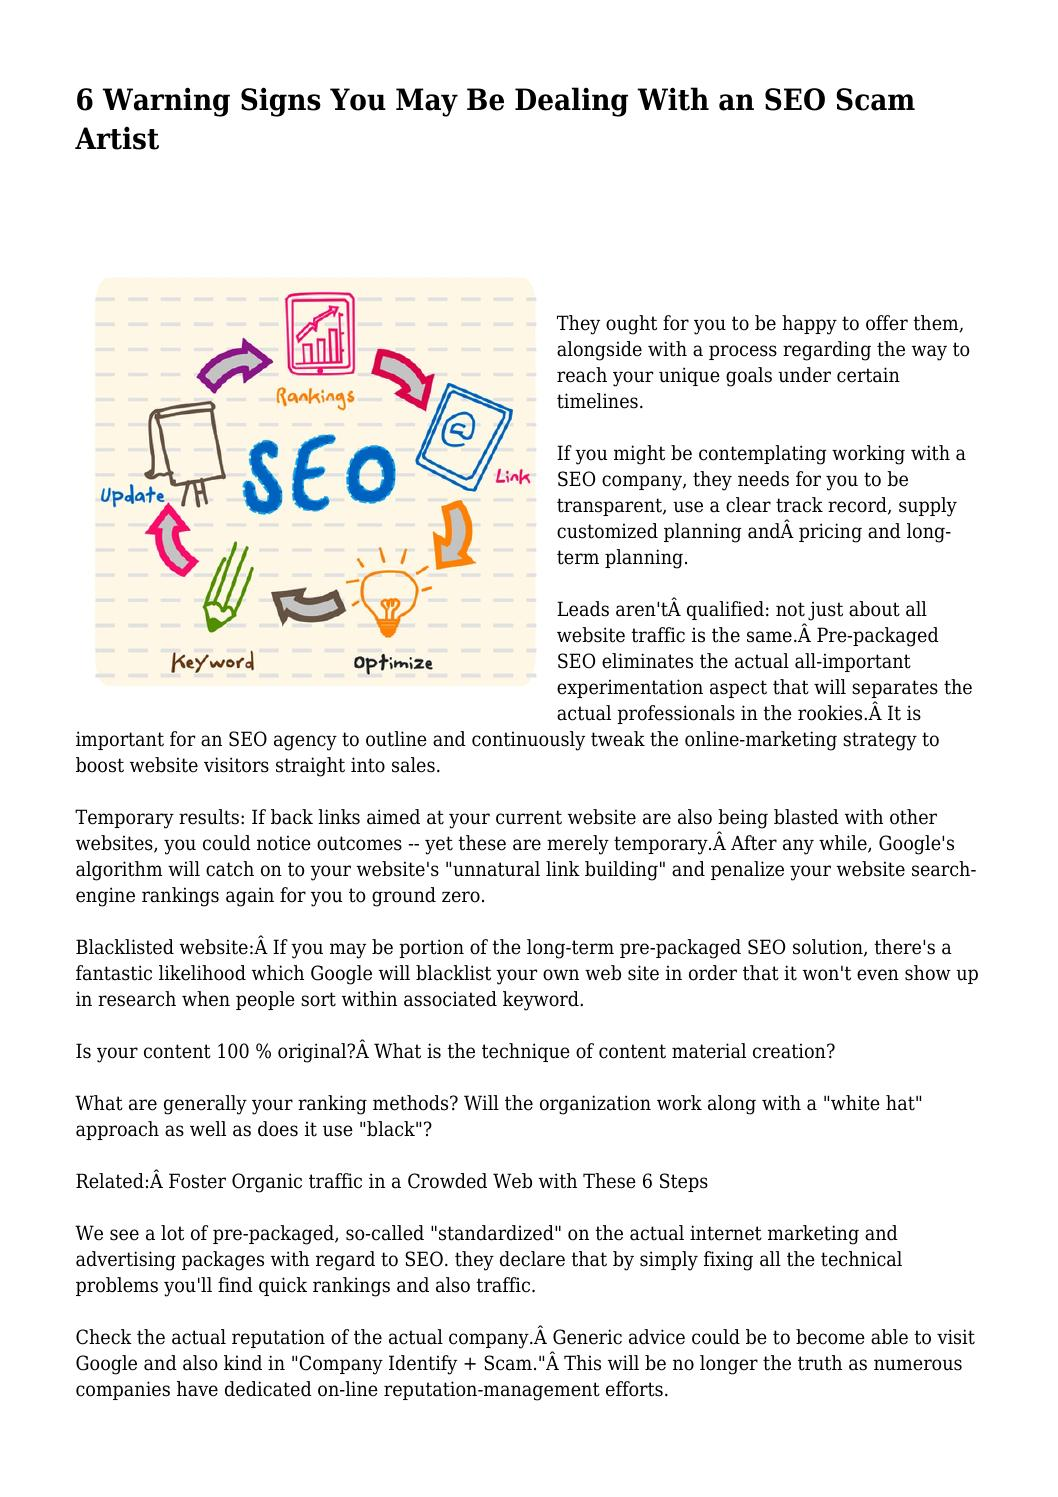 Even With Warning Signs These Traffic >> 6 Warning Signs You May Be Dealing With An Seo Scam Artist By